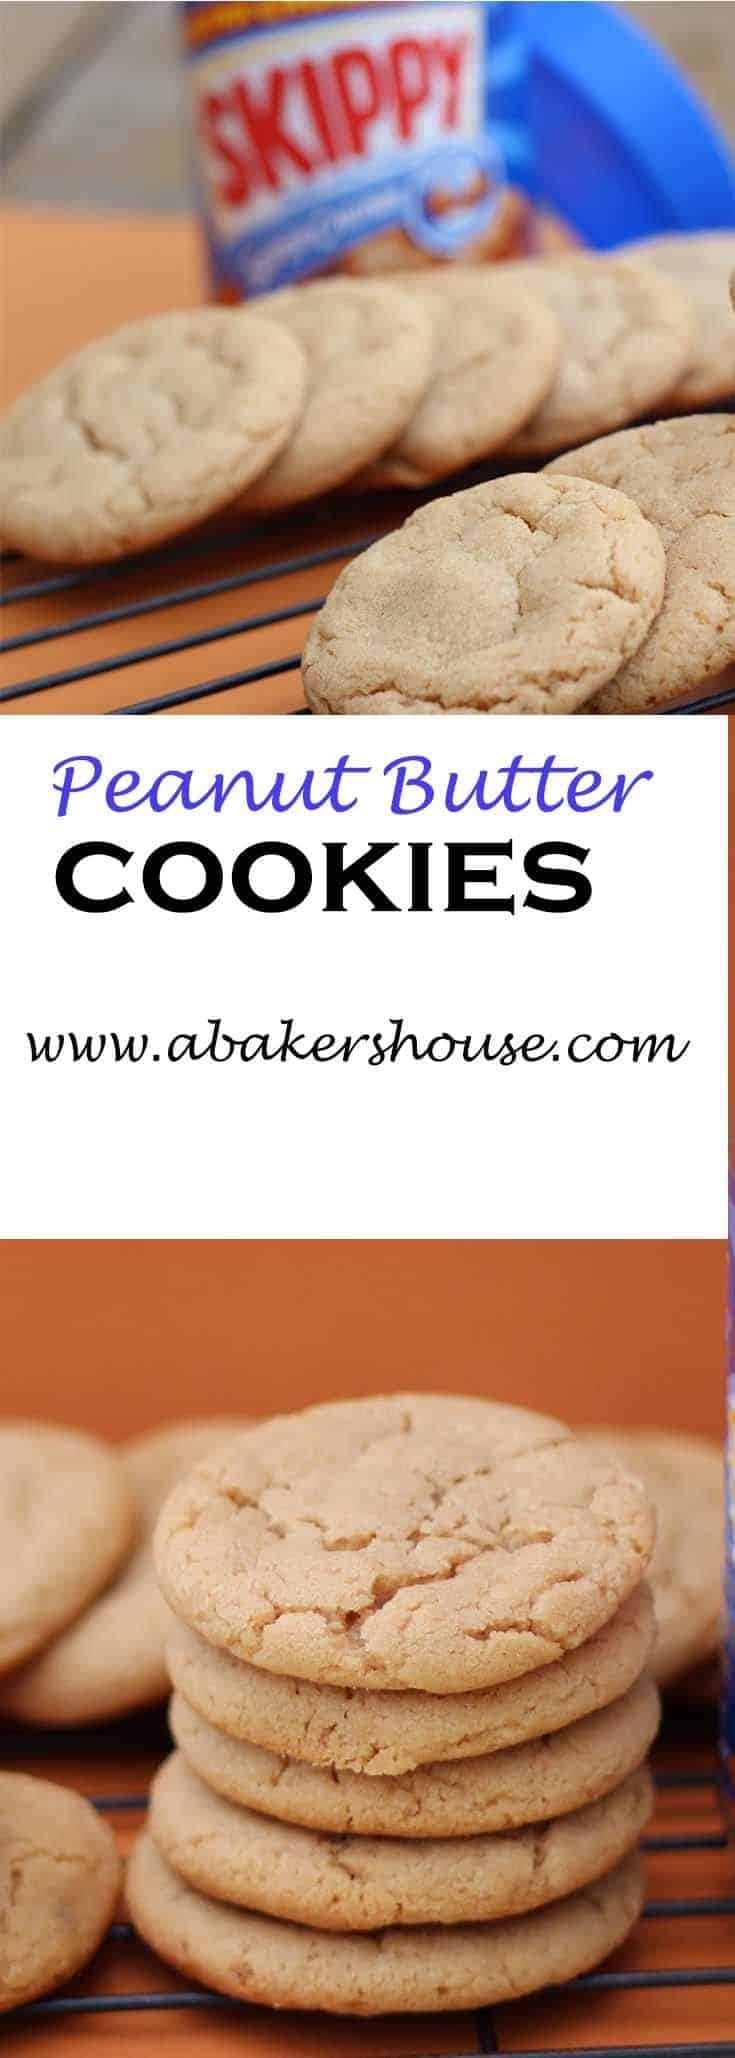 Classic Peanut Butter Cookies are easy to make and will delight those peanut butter lovers in your house! #peanutbutter #cookies #abakershouse #easycookierecipe